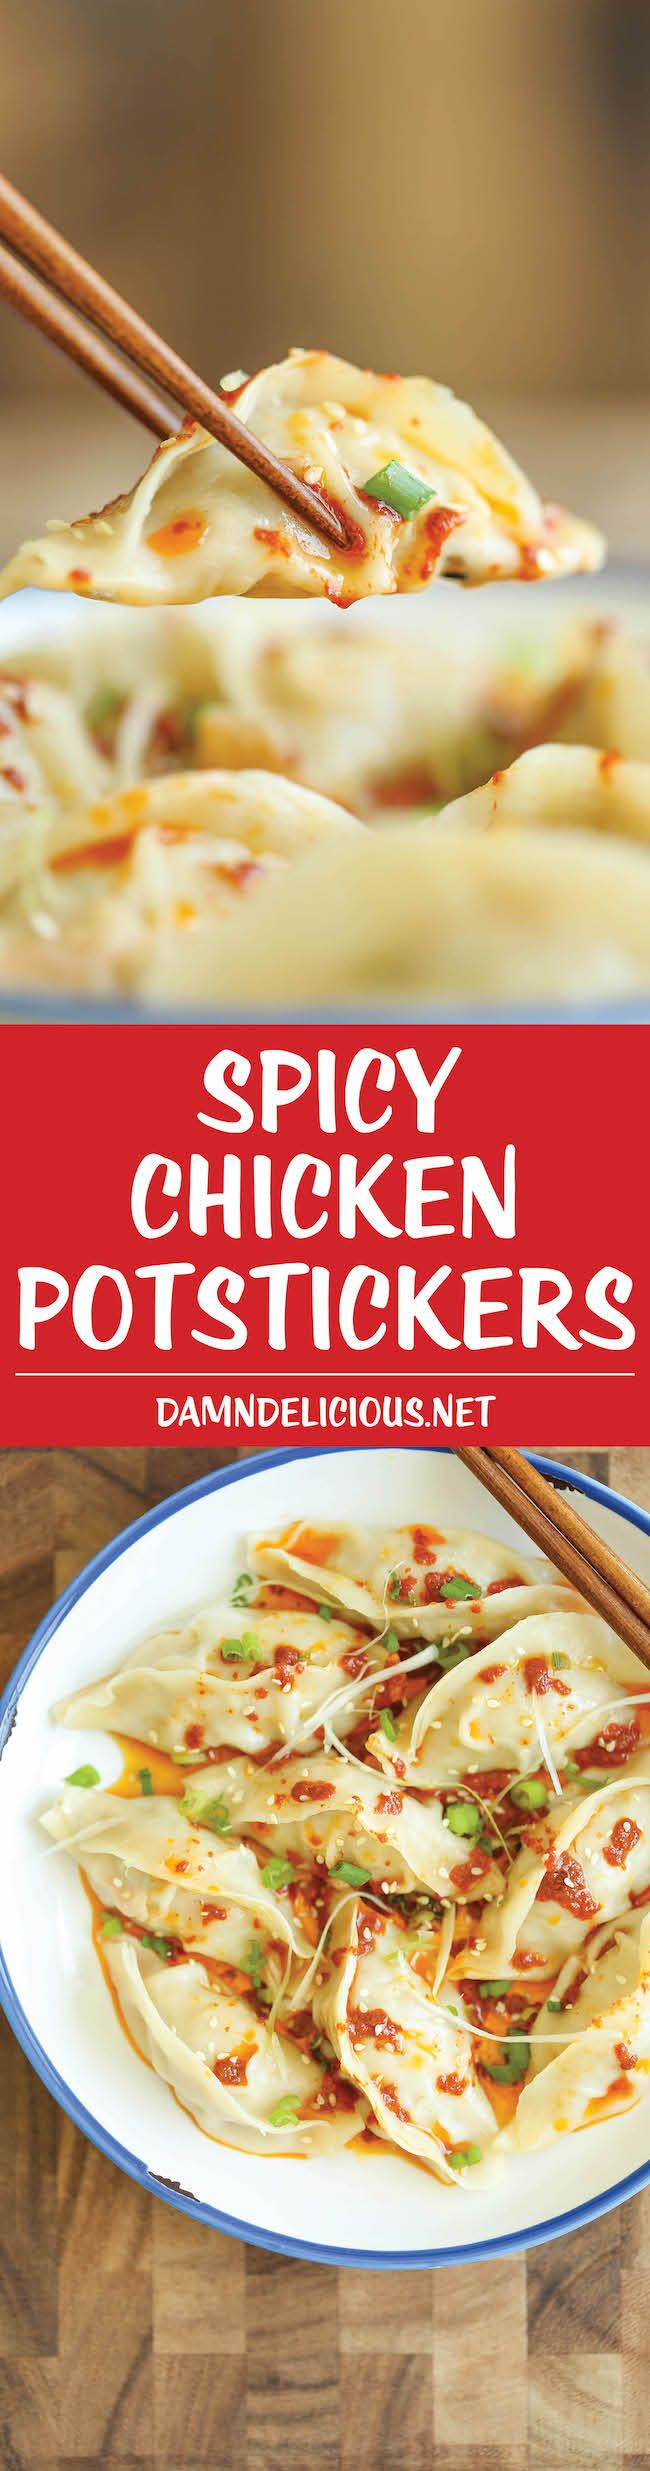 Spicy Chicken Potstickers - Make-ahead, freezer-friendly dumplings made…